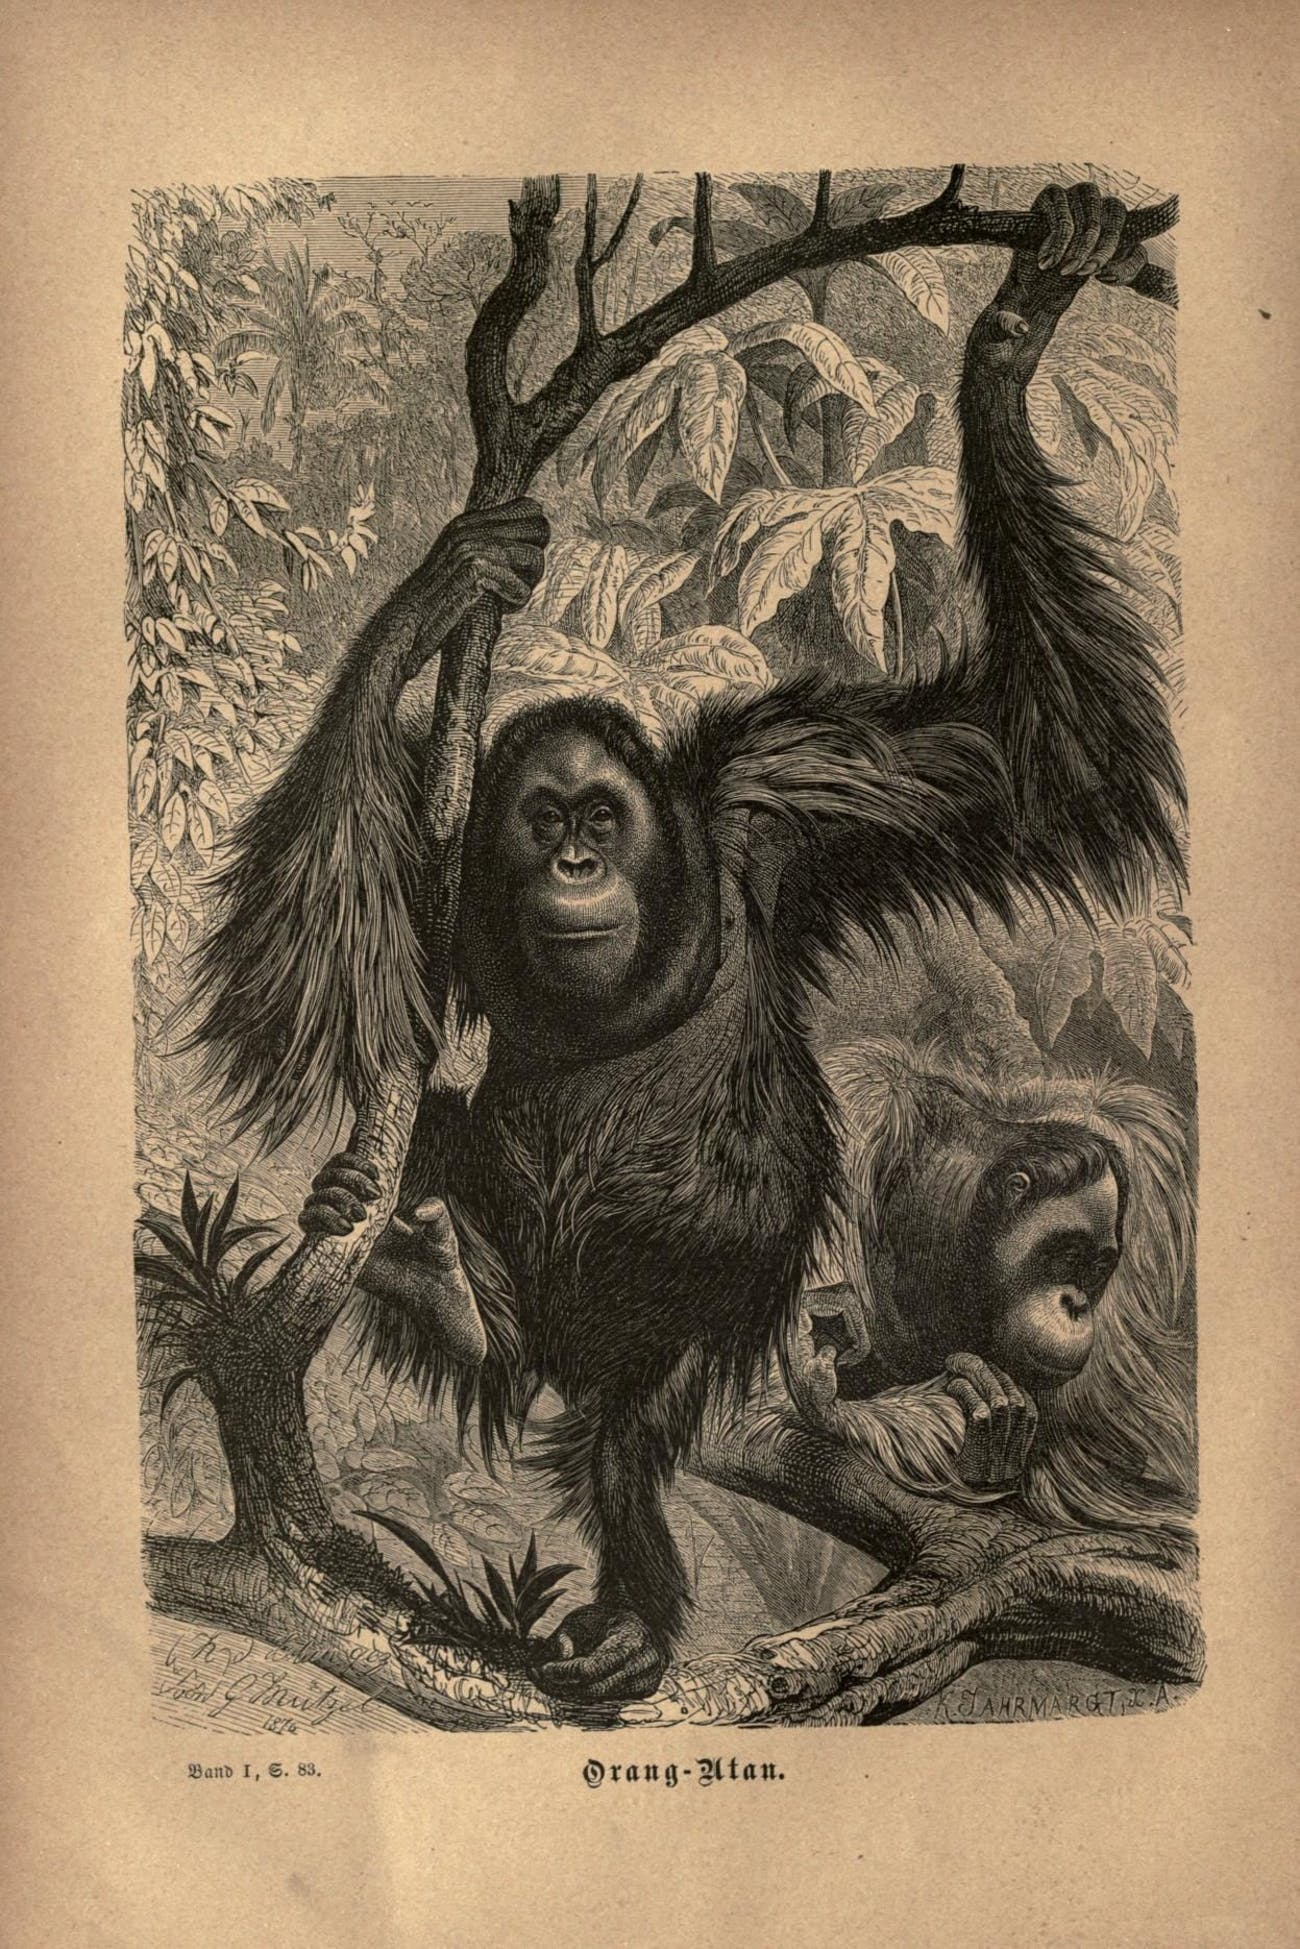 Ancient Ape Gigantopithecus Proves King Kong Can't Exist